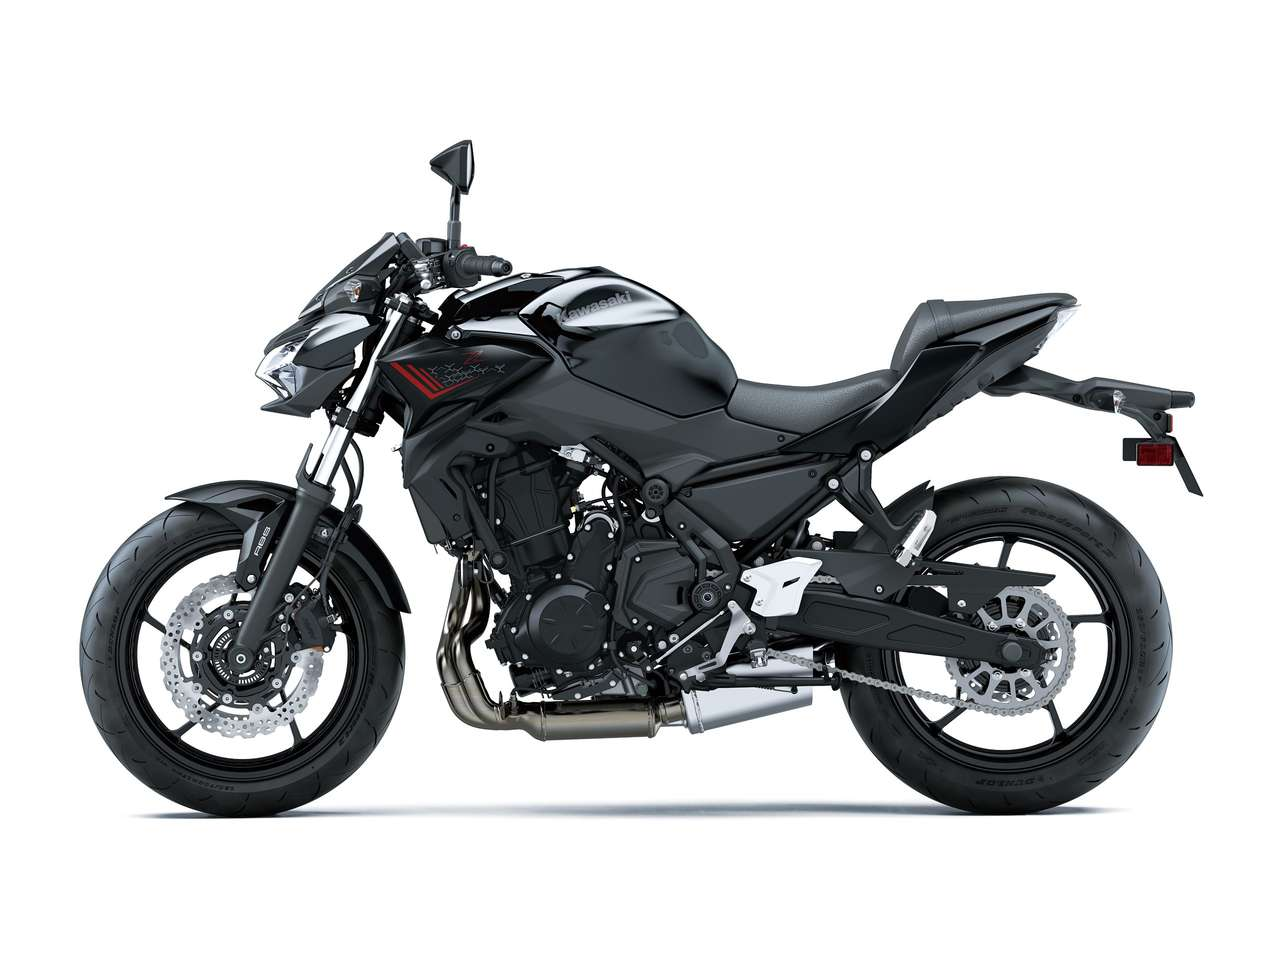 Kawasaki Z650 2021: Metallic Spark Black/ Metallic Flat Spark Black